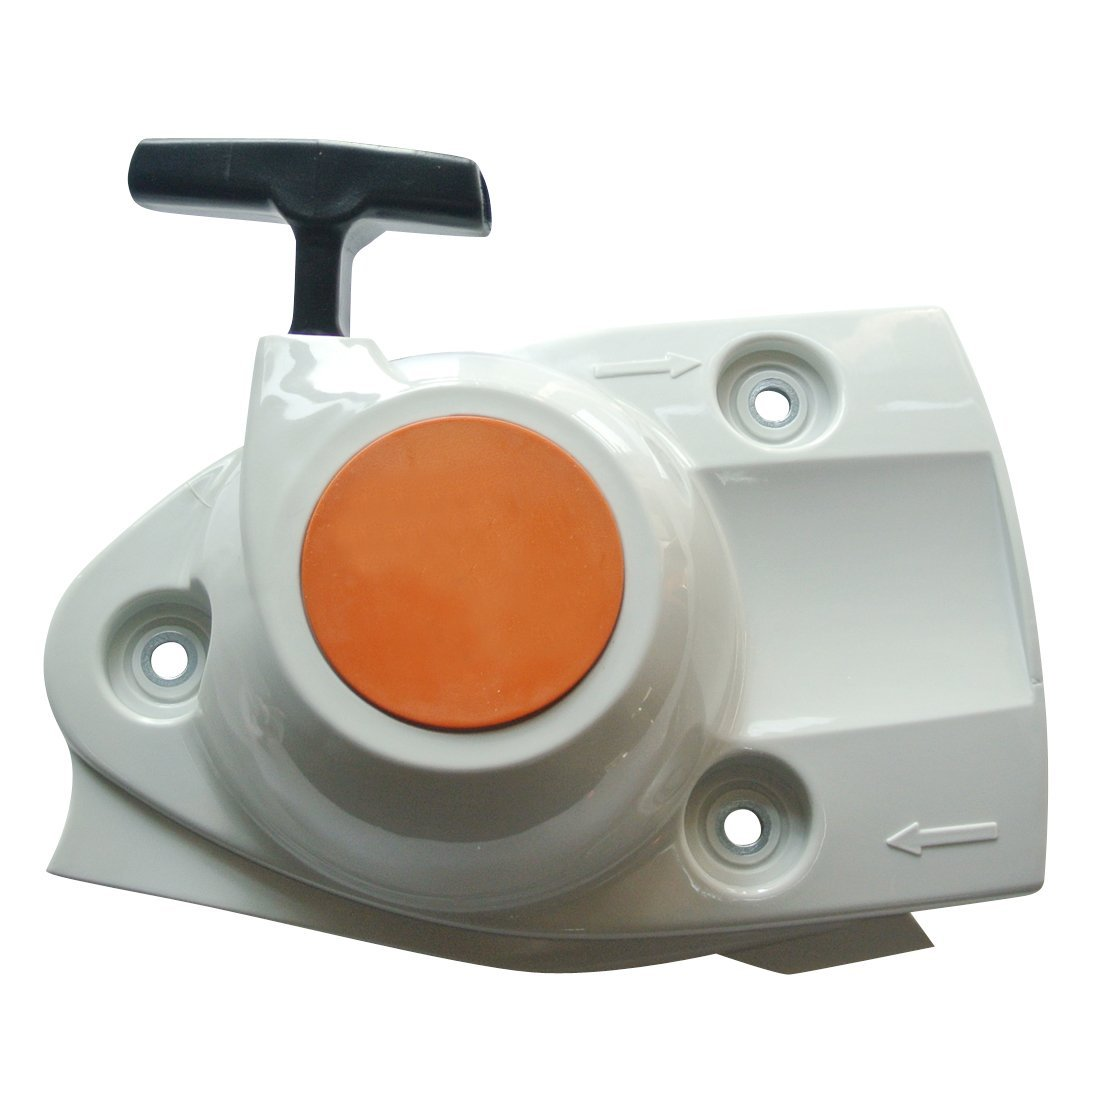 WELOVEHOME Starter Recoil Assembly for Stihl Chainsaw TS410 TS420 Cut-Off Saws 4238-190-0300 by WELOVEHOME